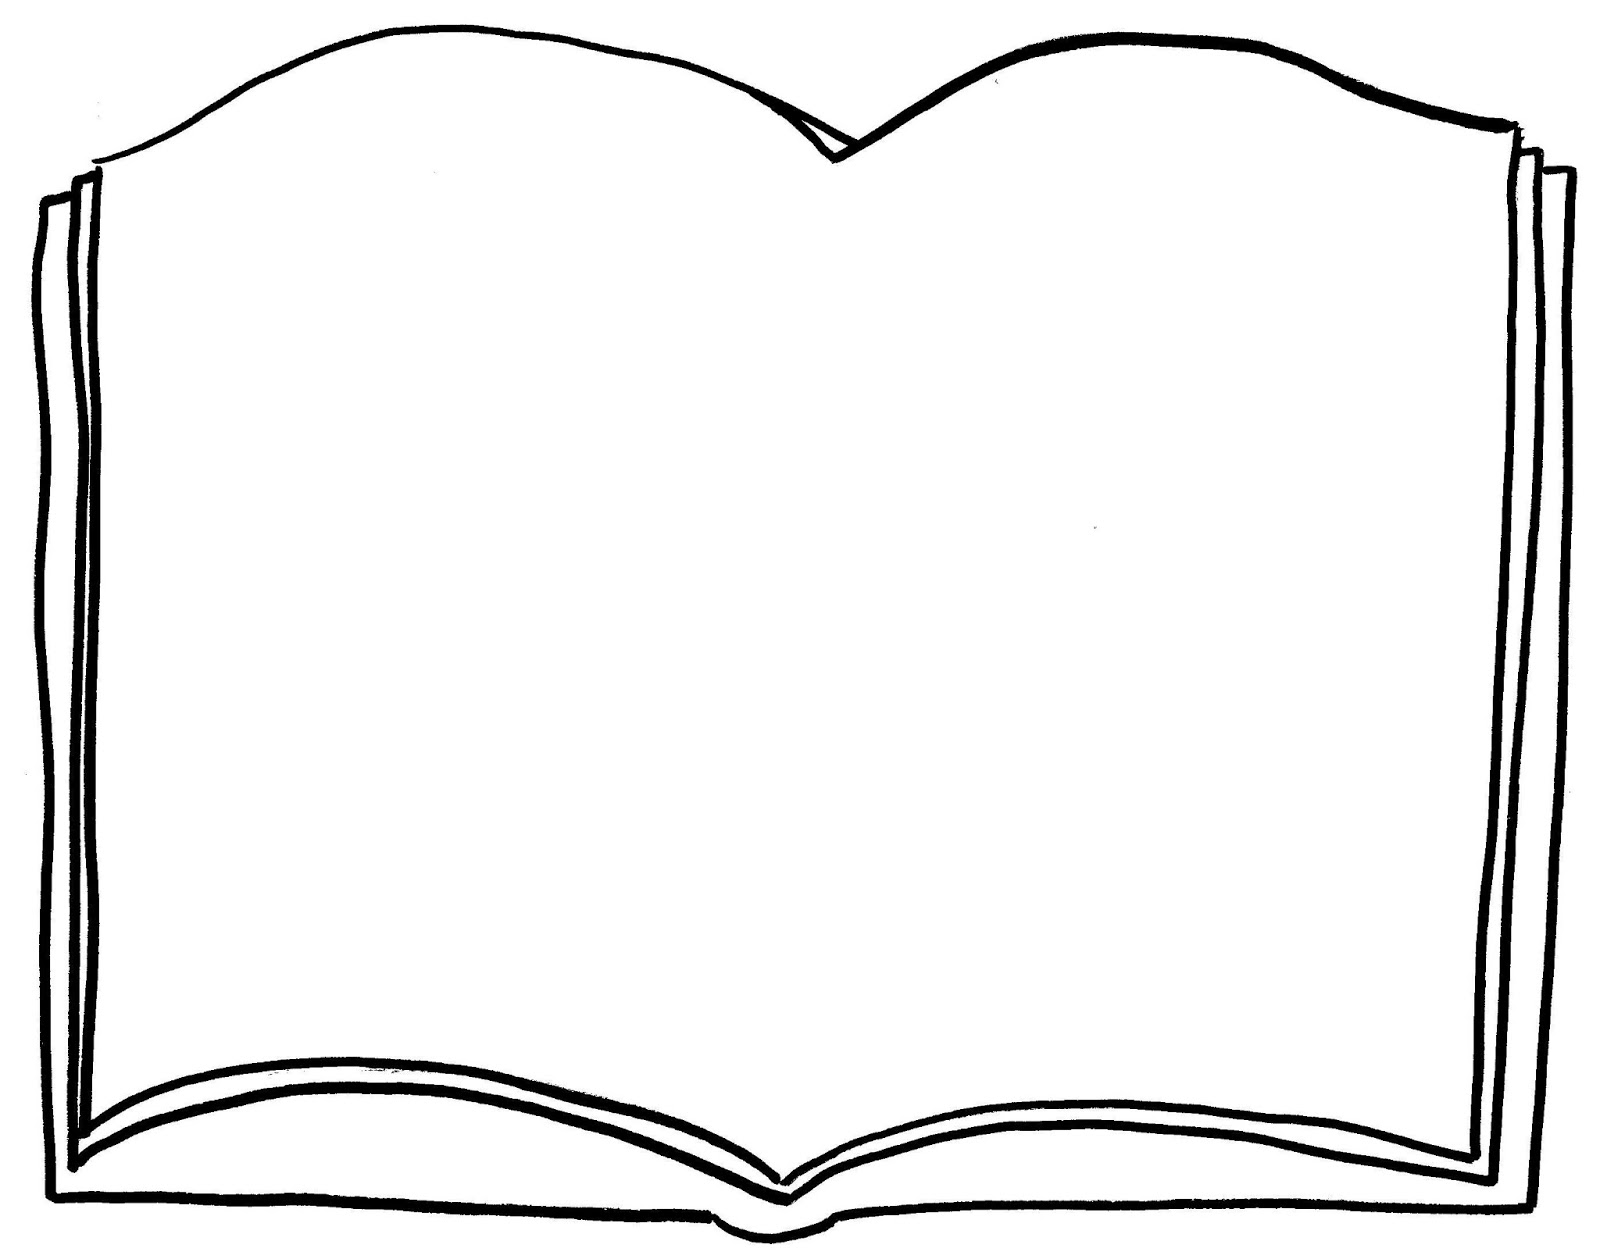 Open Book Coloring Page Free Download Best Open Book